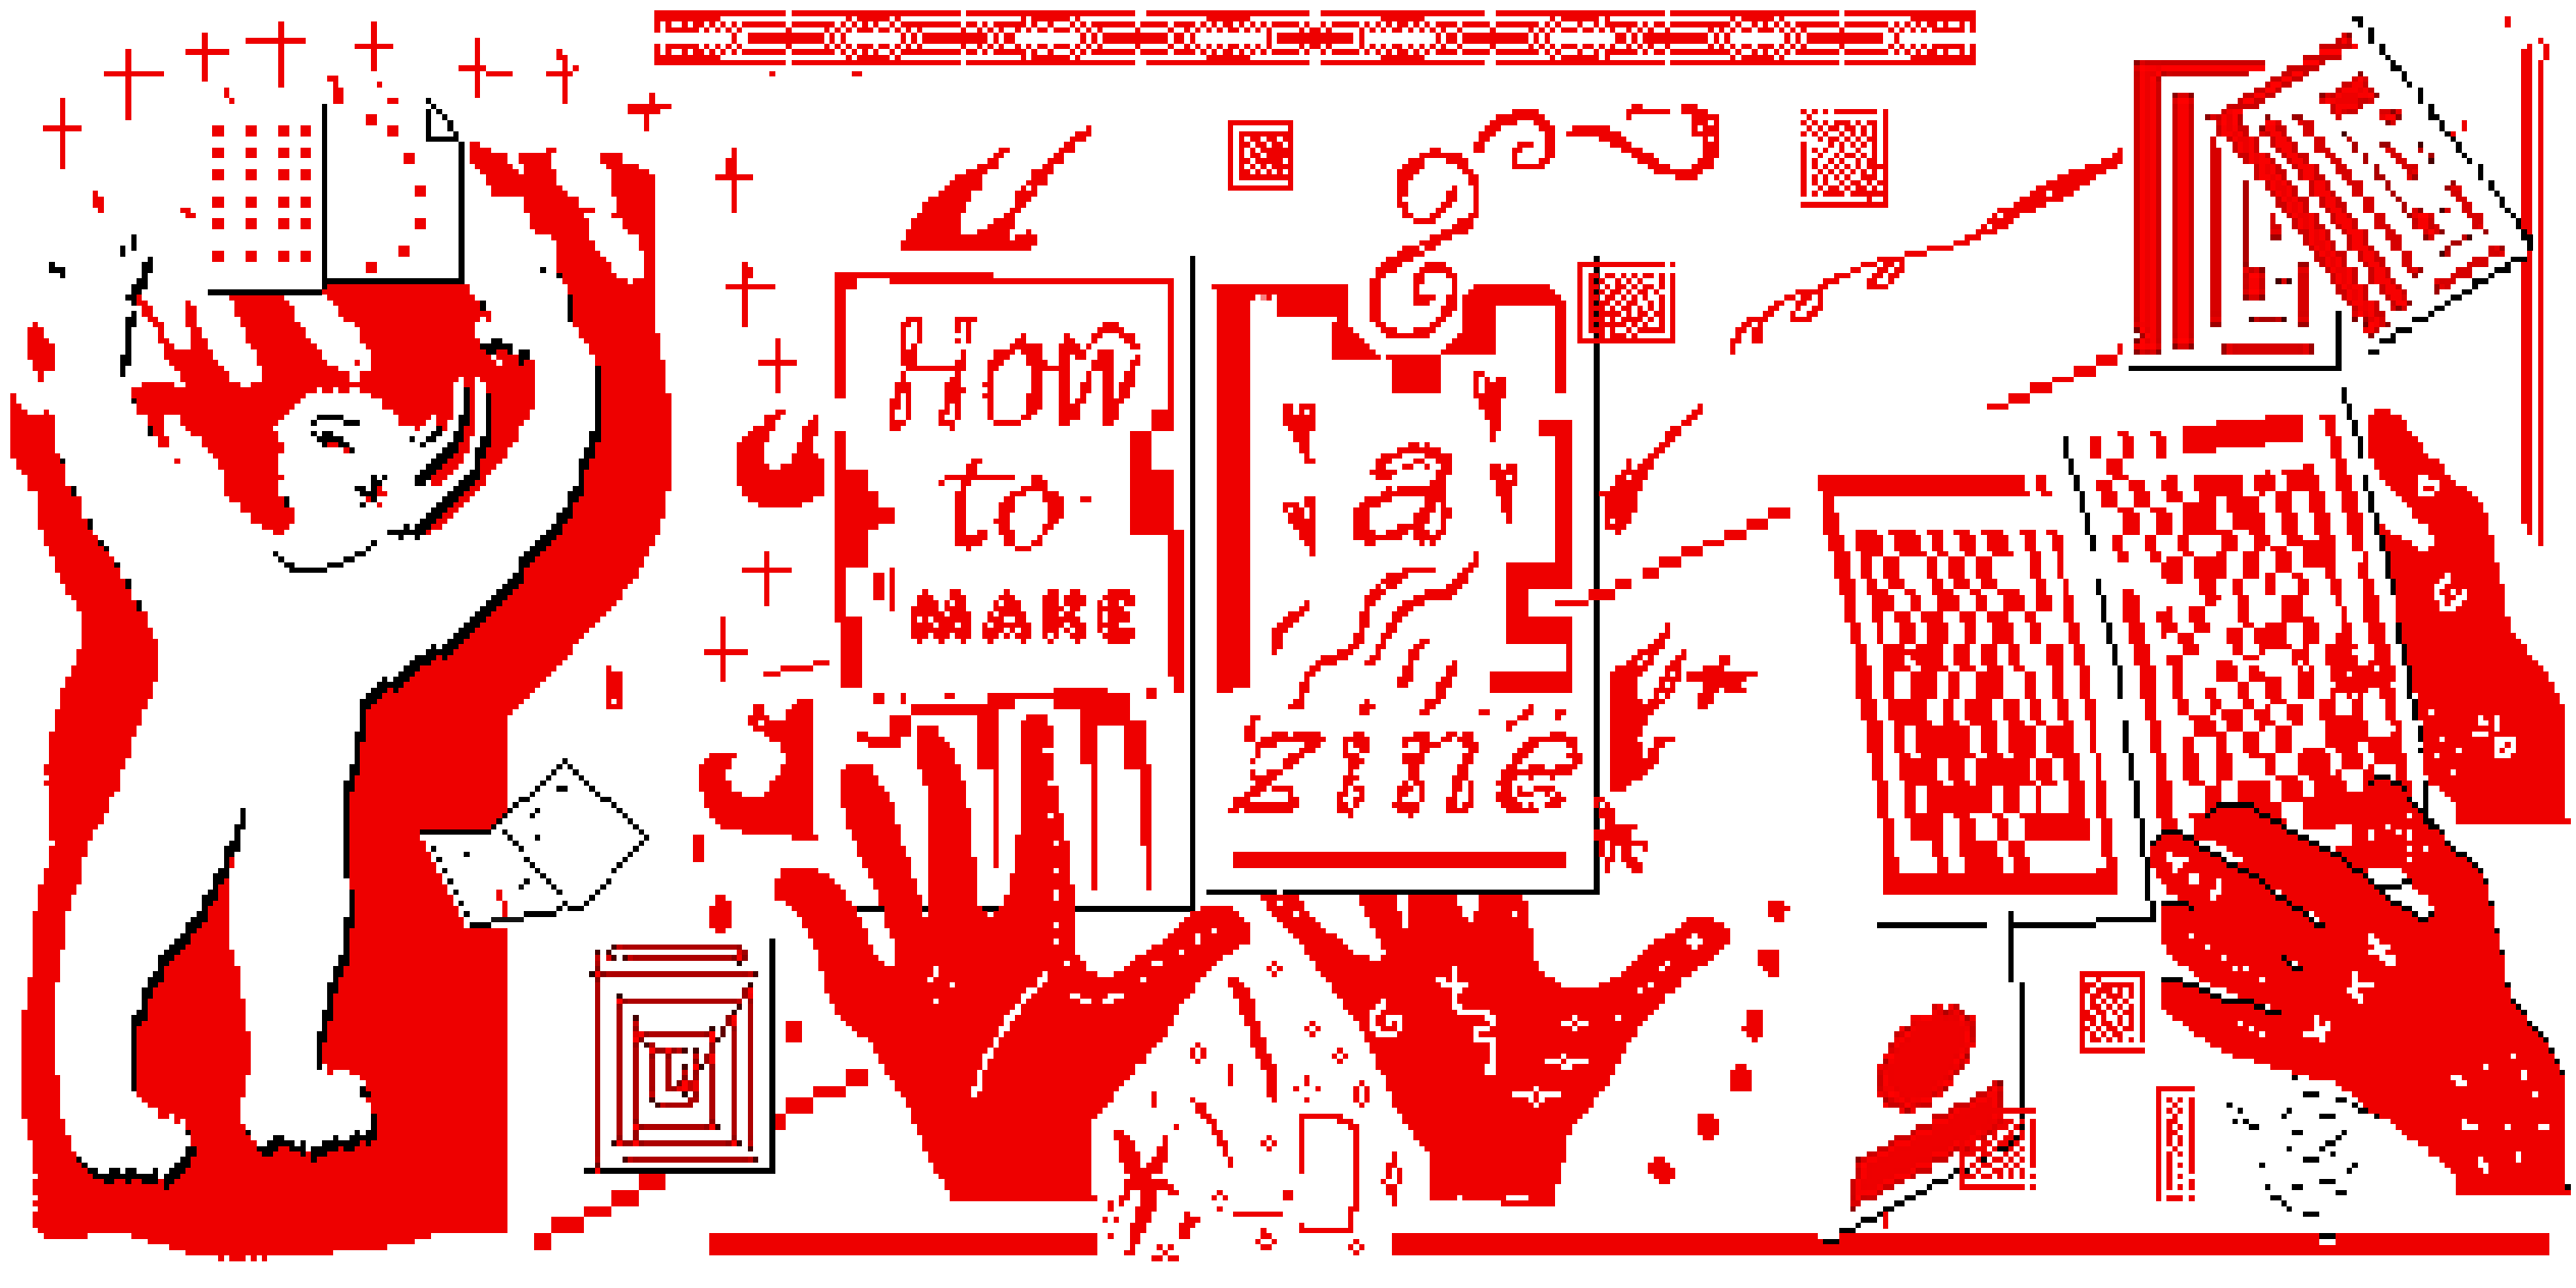 How To Make A Zine The Creative Independent